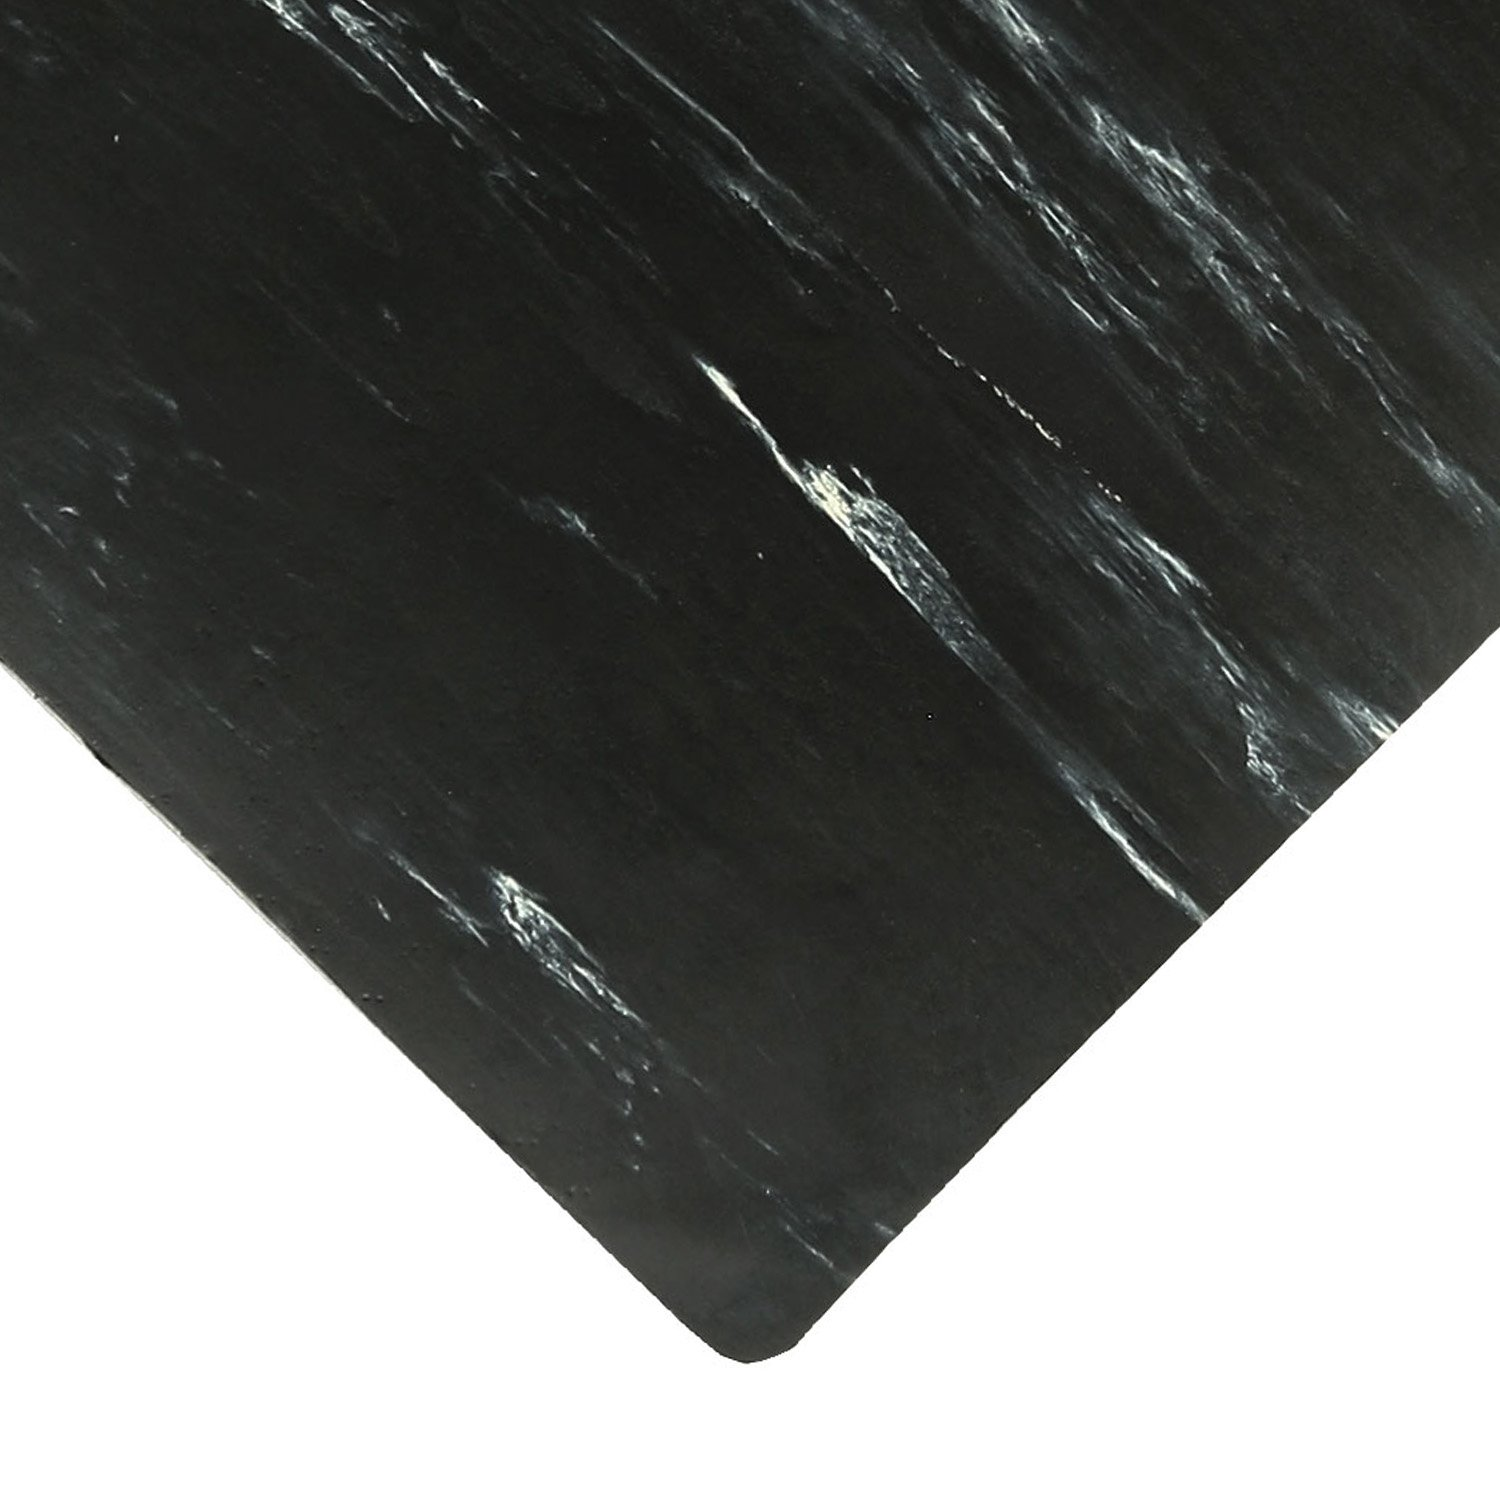 NoTrax Rubber 970 Marble Sof-Tyle Grande Anti-Fatigue Mat, for Dry Areas, 3' Width x 5' Length x 1'' Thickness, Black